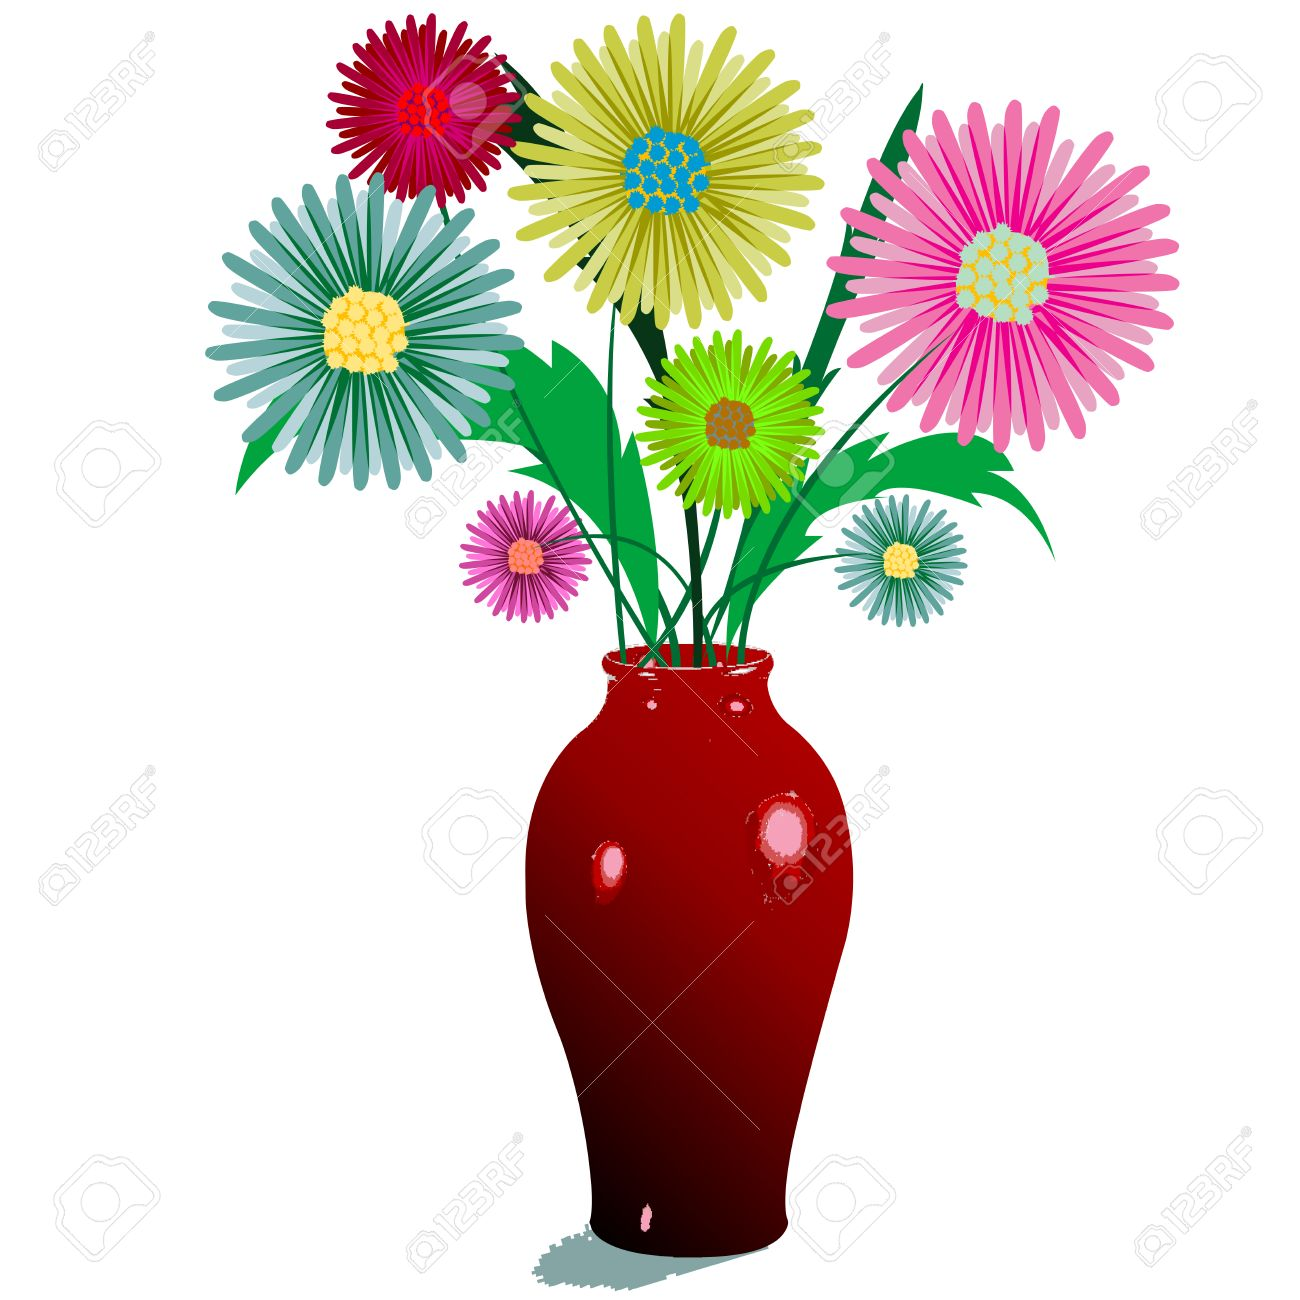 Flower vase images stock pictures royalty free flower vase flowers and vase composition isolated on white abstract art illustration reviewsmspy